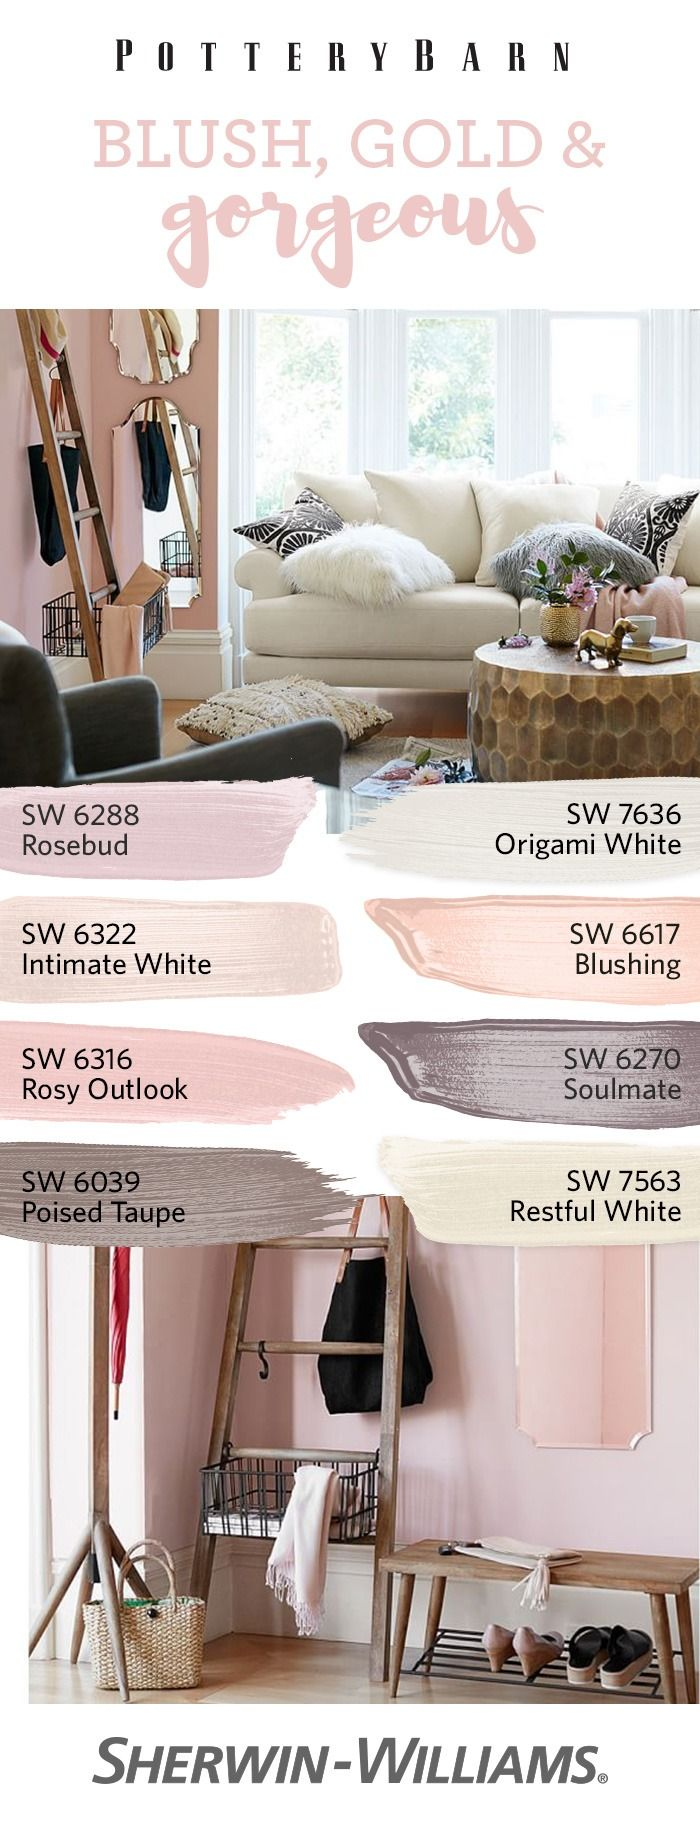 Rediscover the romance of any room, thanks to this rosy